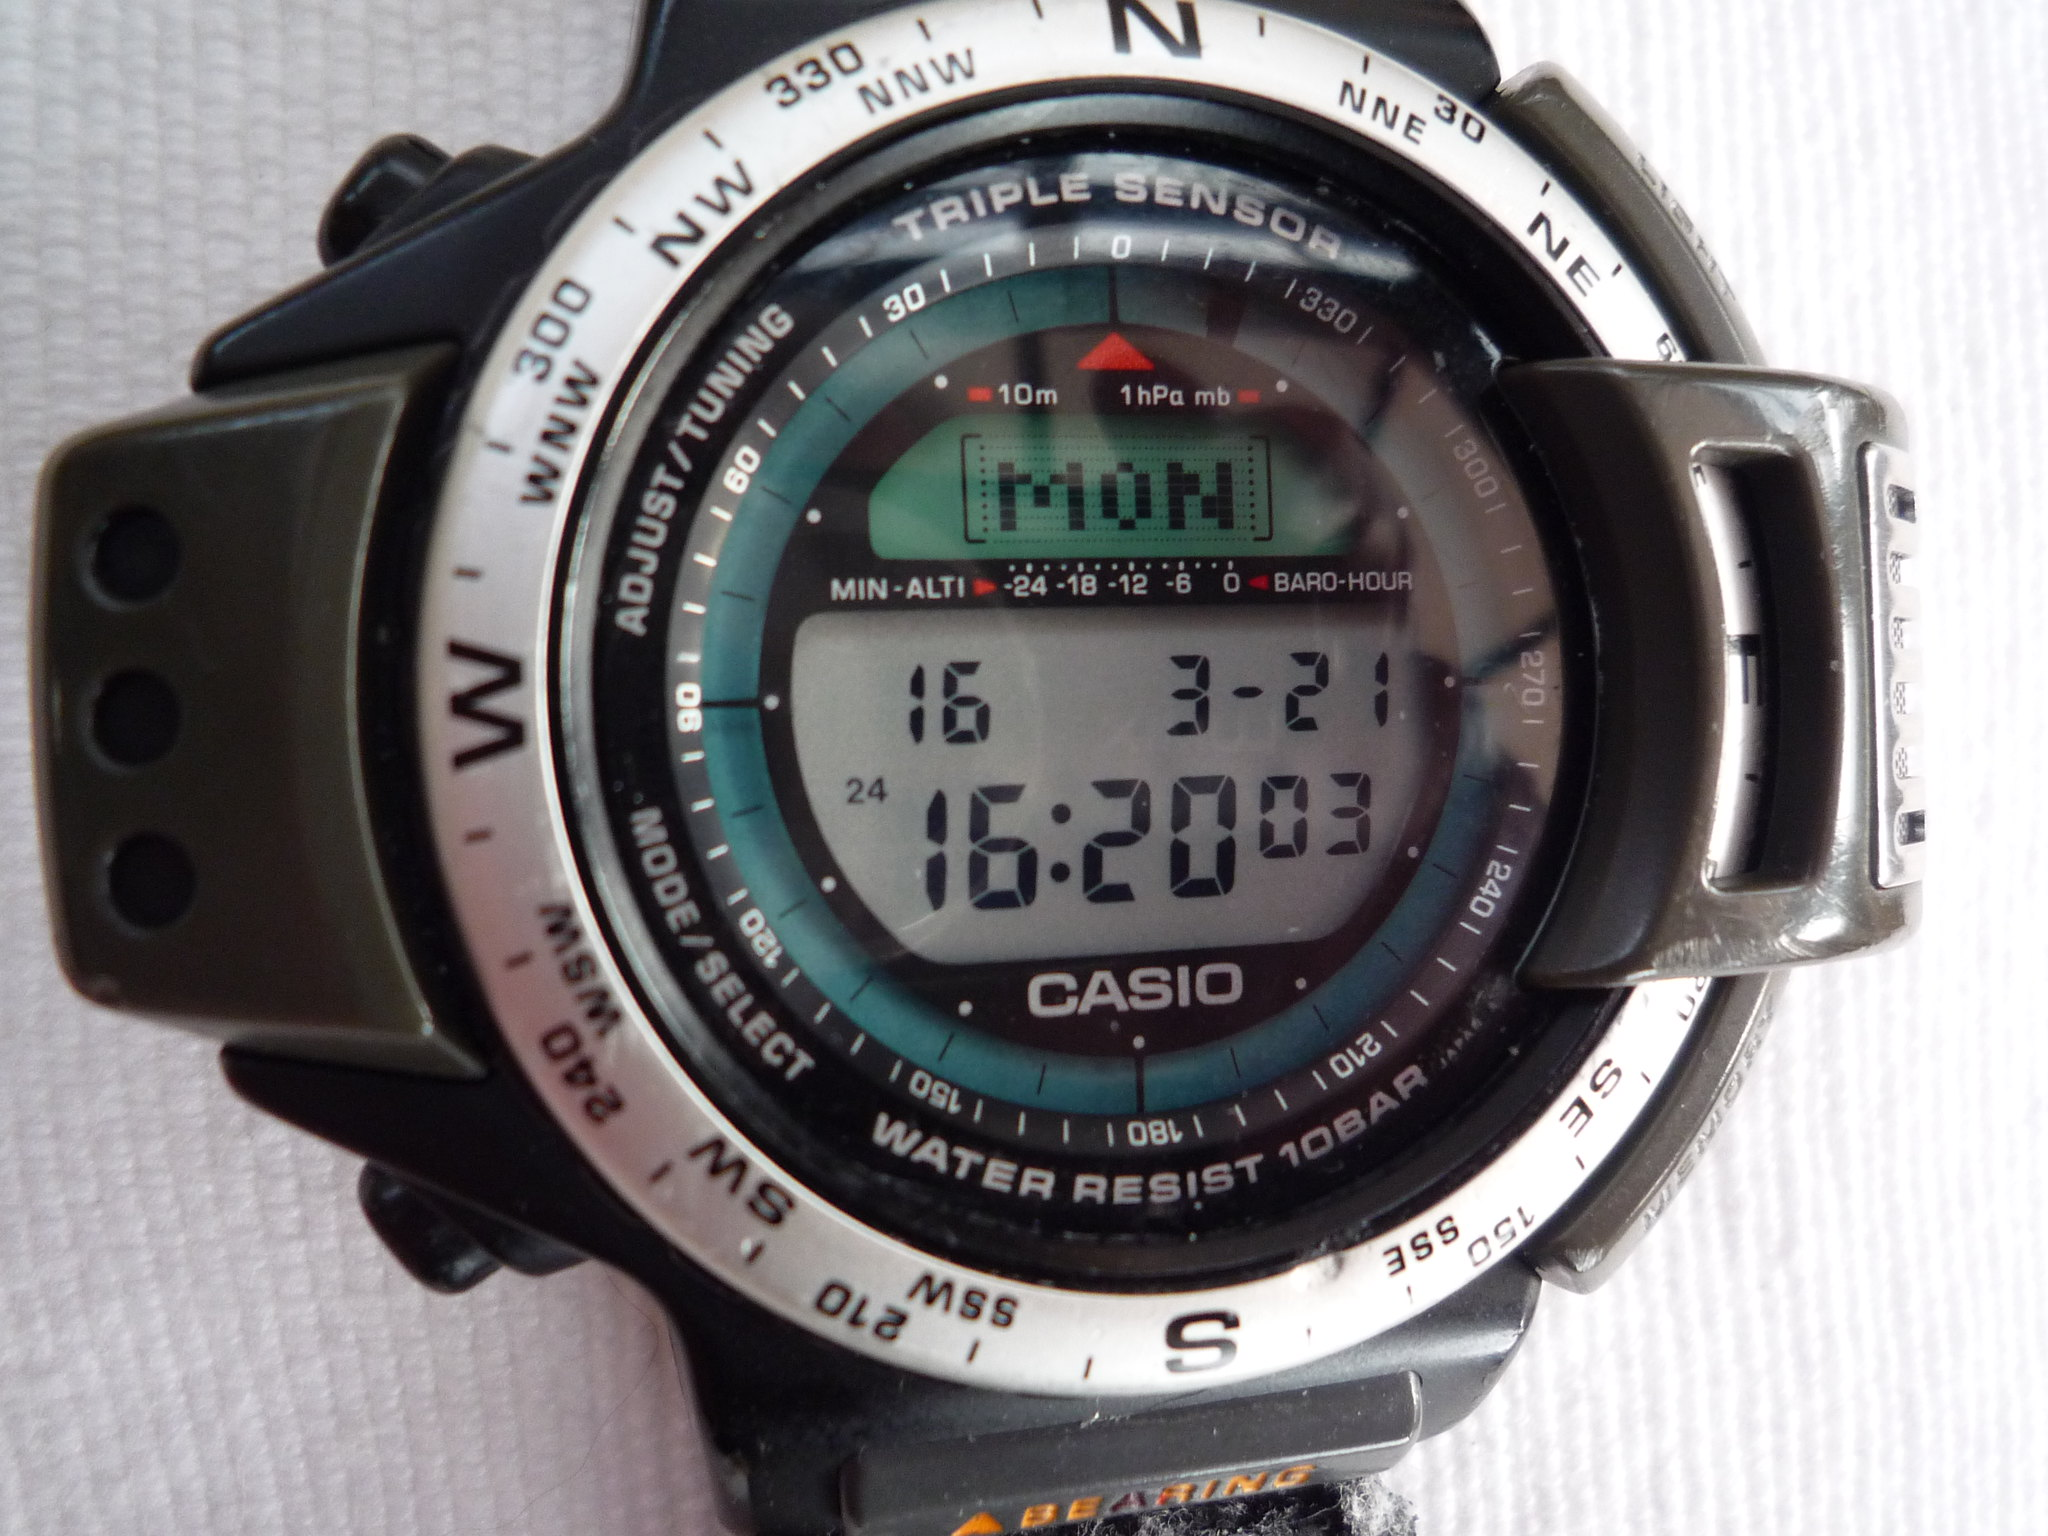 sight in always how just prw watches already abc casio know as alarm of chronograph gents that construct first box impressive watch pro the is high grade from its such mens trek to